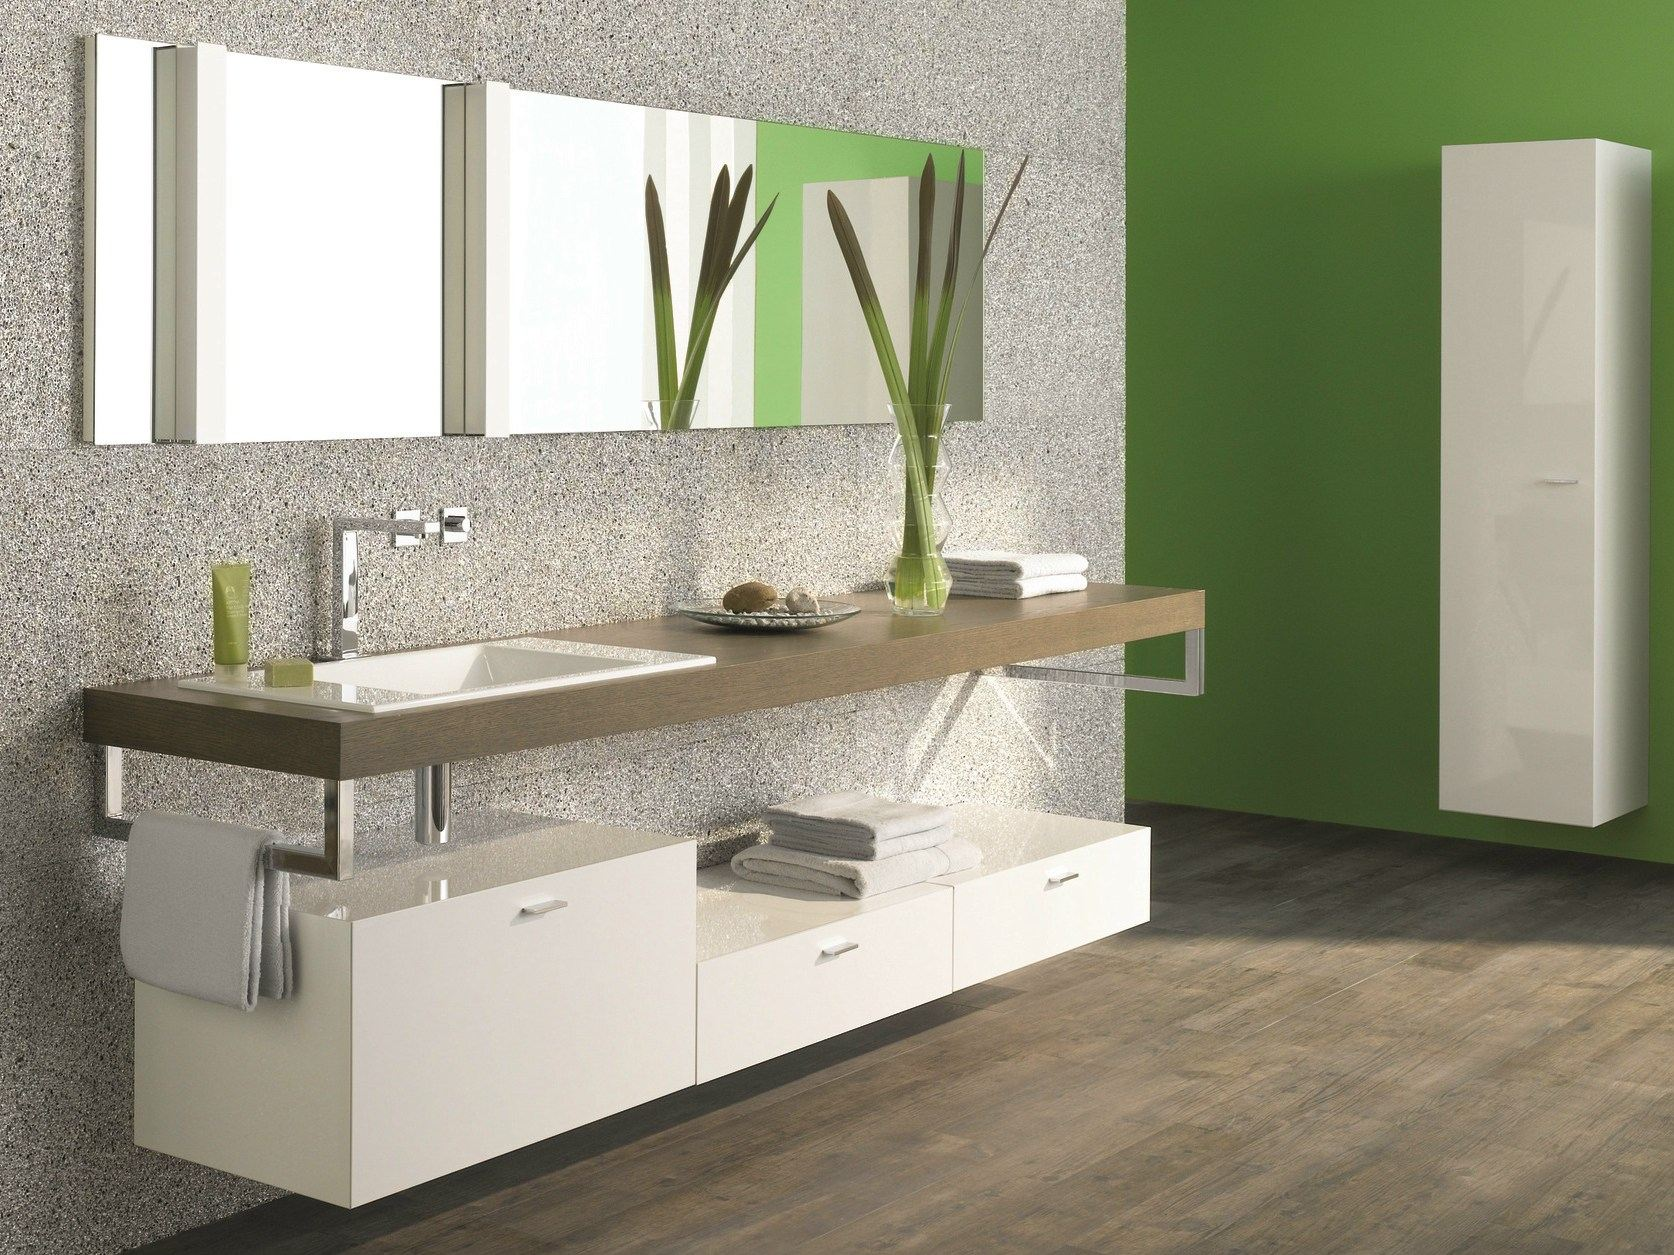 Plan de toilette simple en bois betteroom tr gerplatte by for Plan de toilette salle de bain